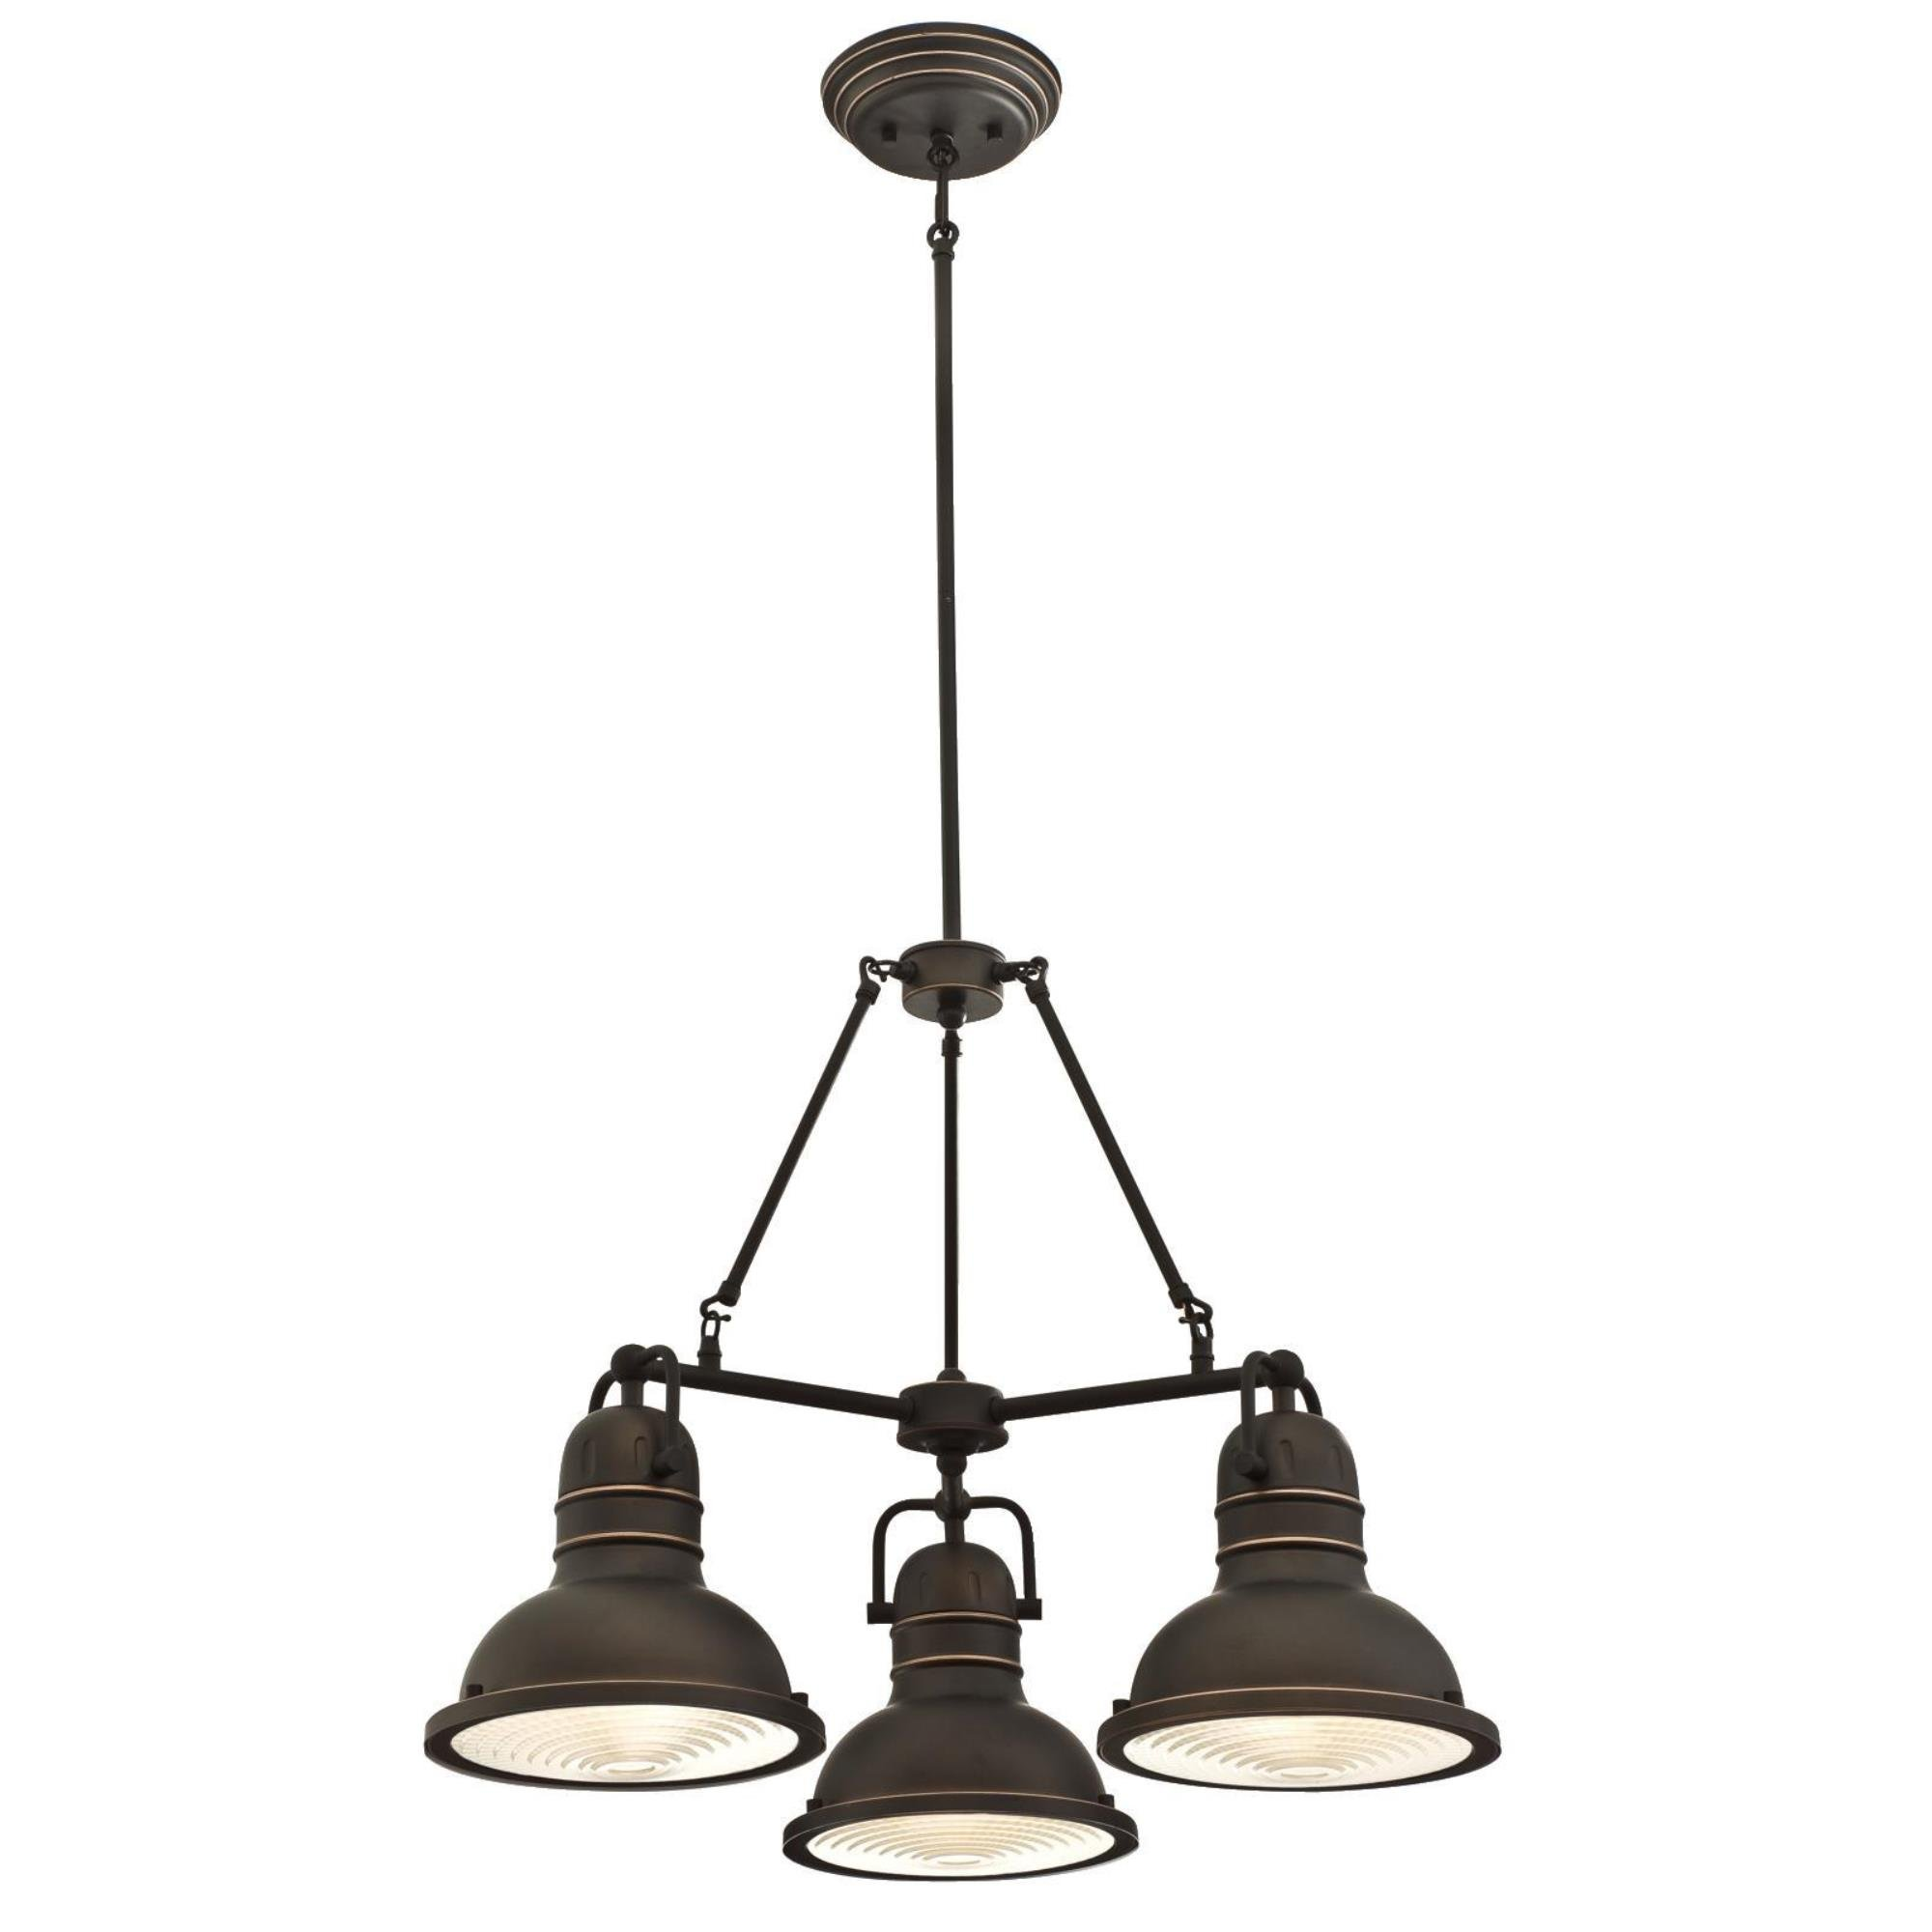 Westinghouse 6333700 Boswell Three-Light Indoor Chandelier Finish with Highlights and Prismatic Lens, Oil Rubbed Bronze by Westinghouse